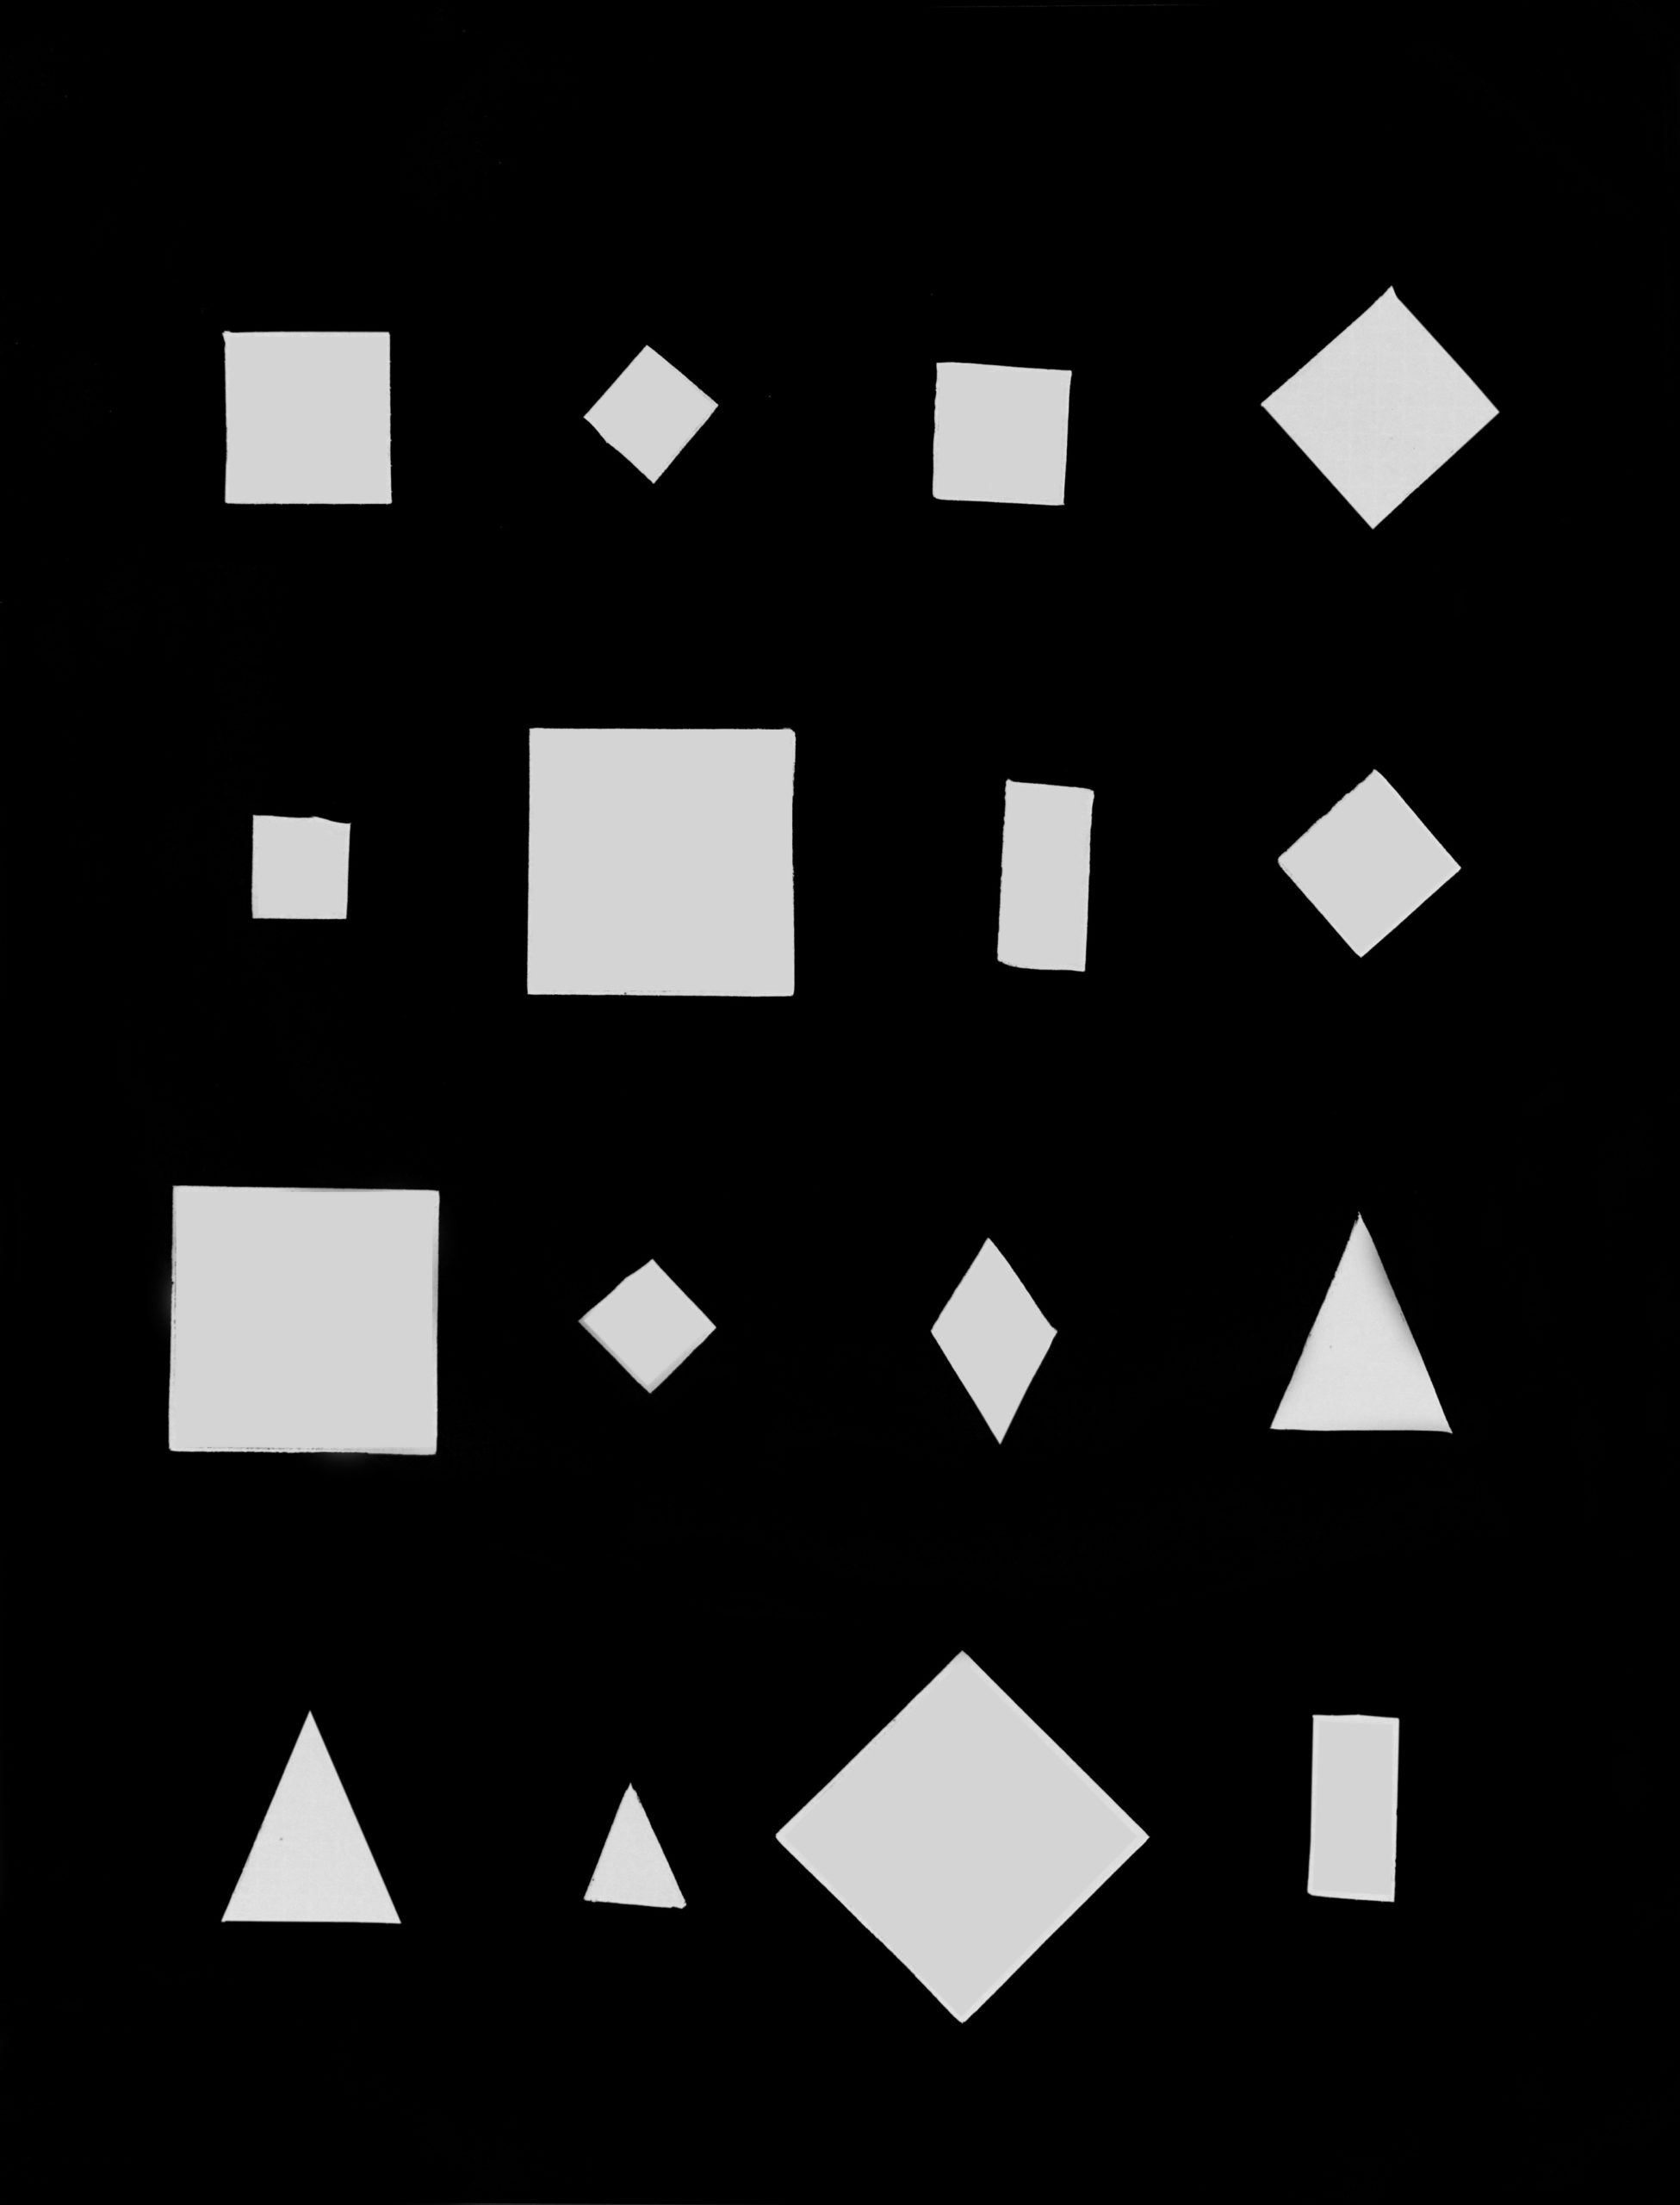 black paper with squares and triangles cut out of it